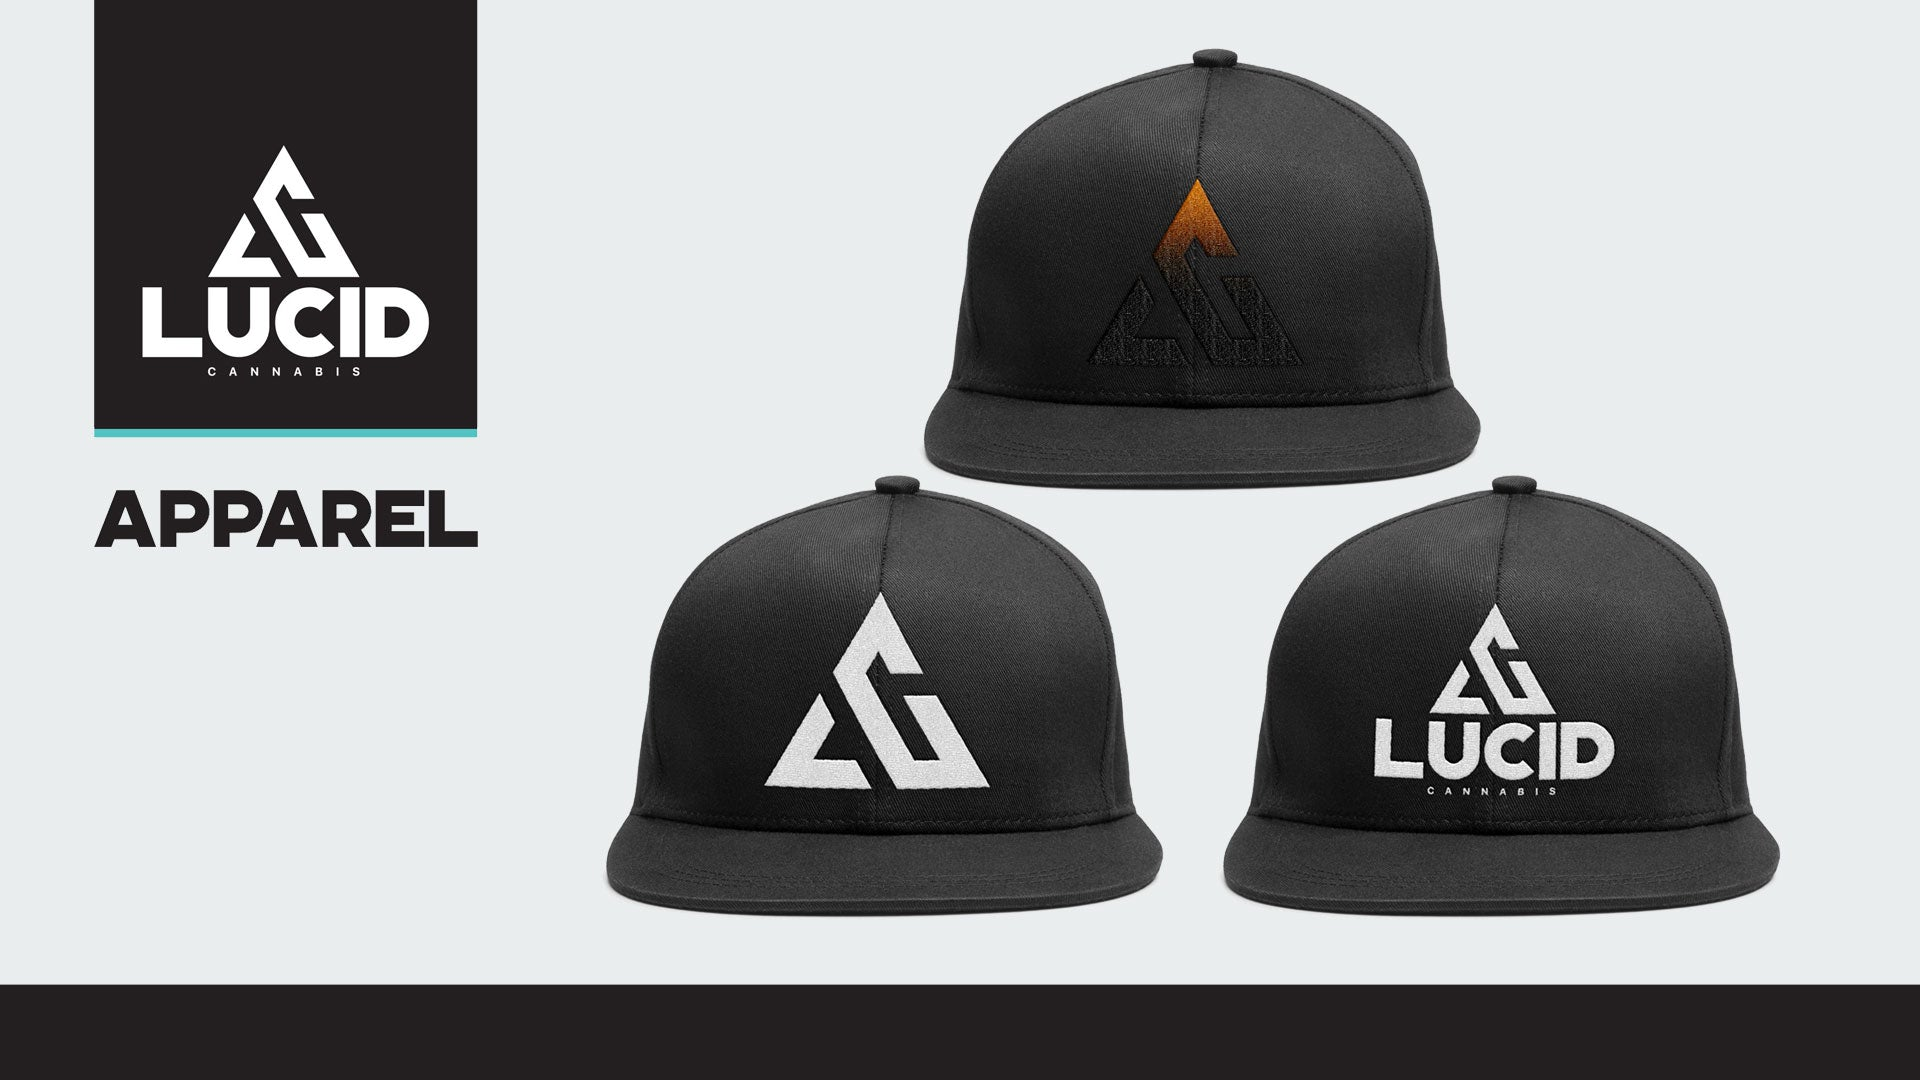 Selection of hats in our apparel lineup